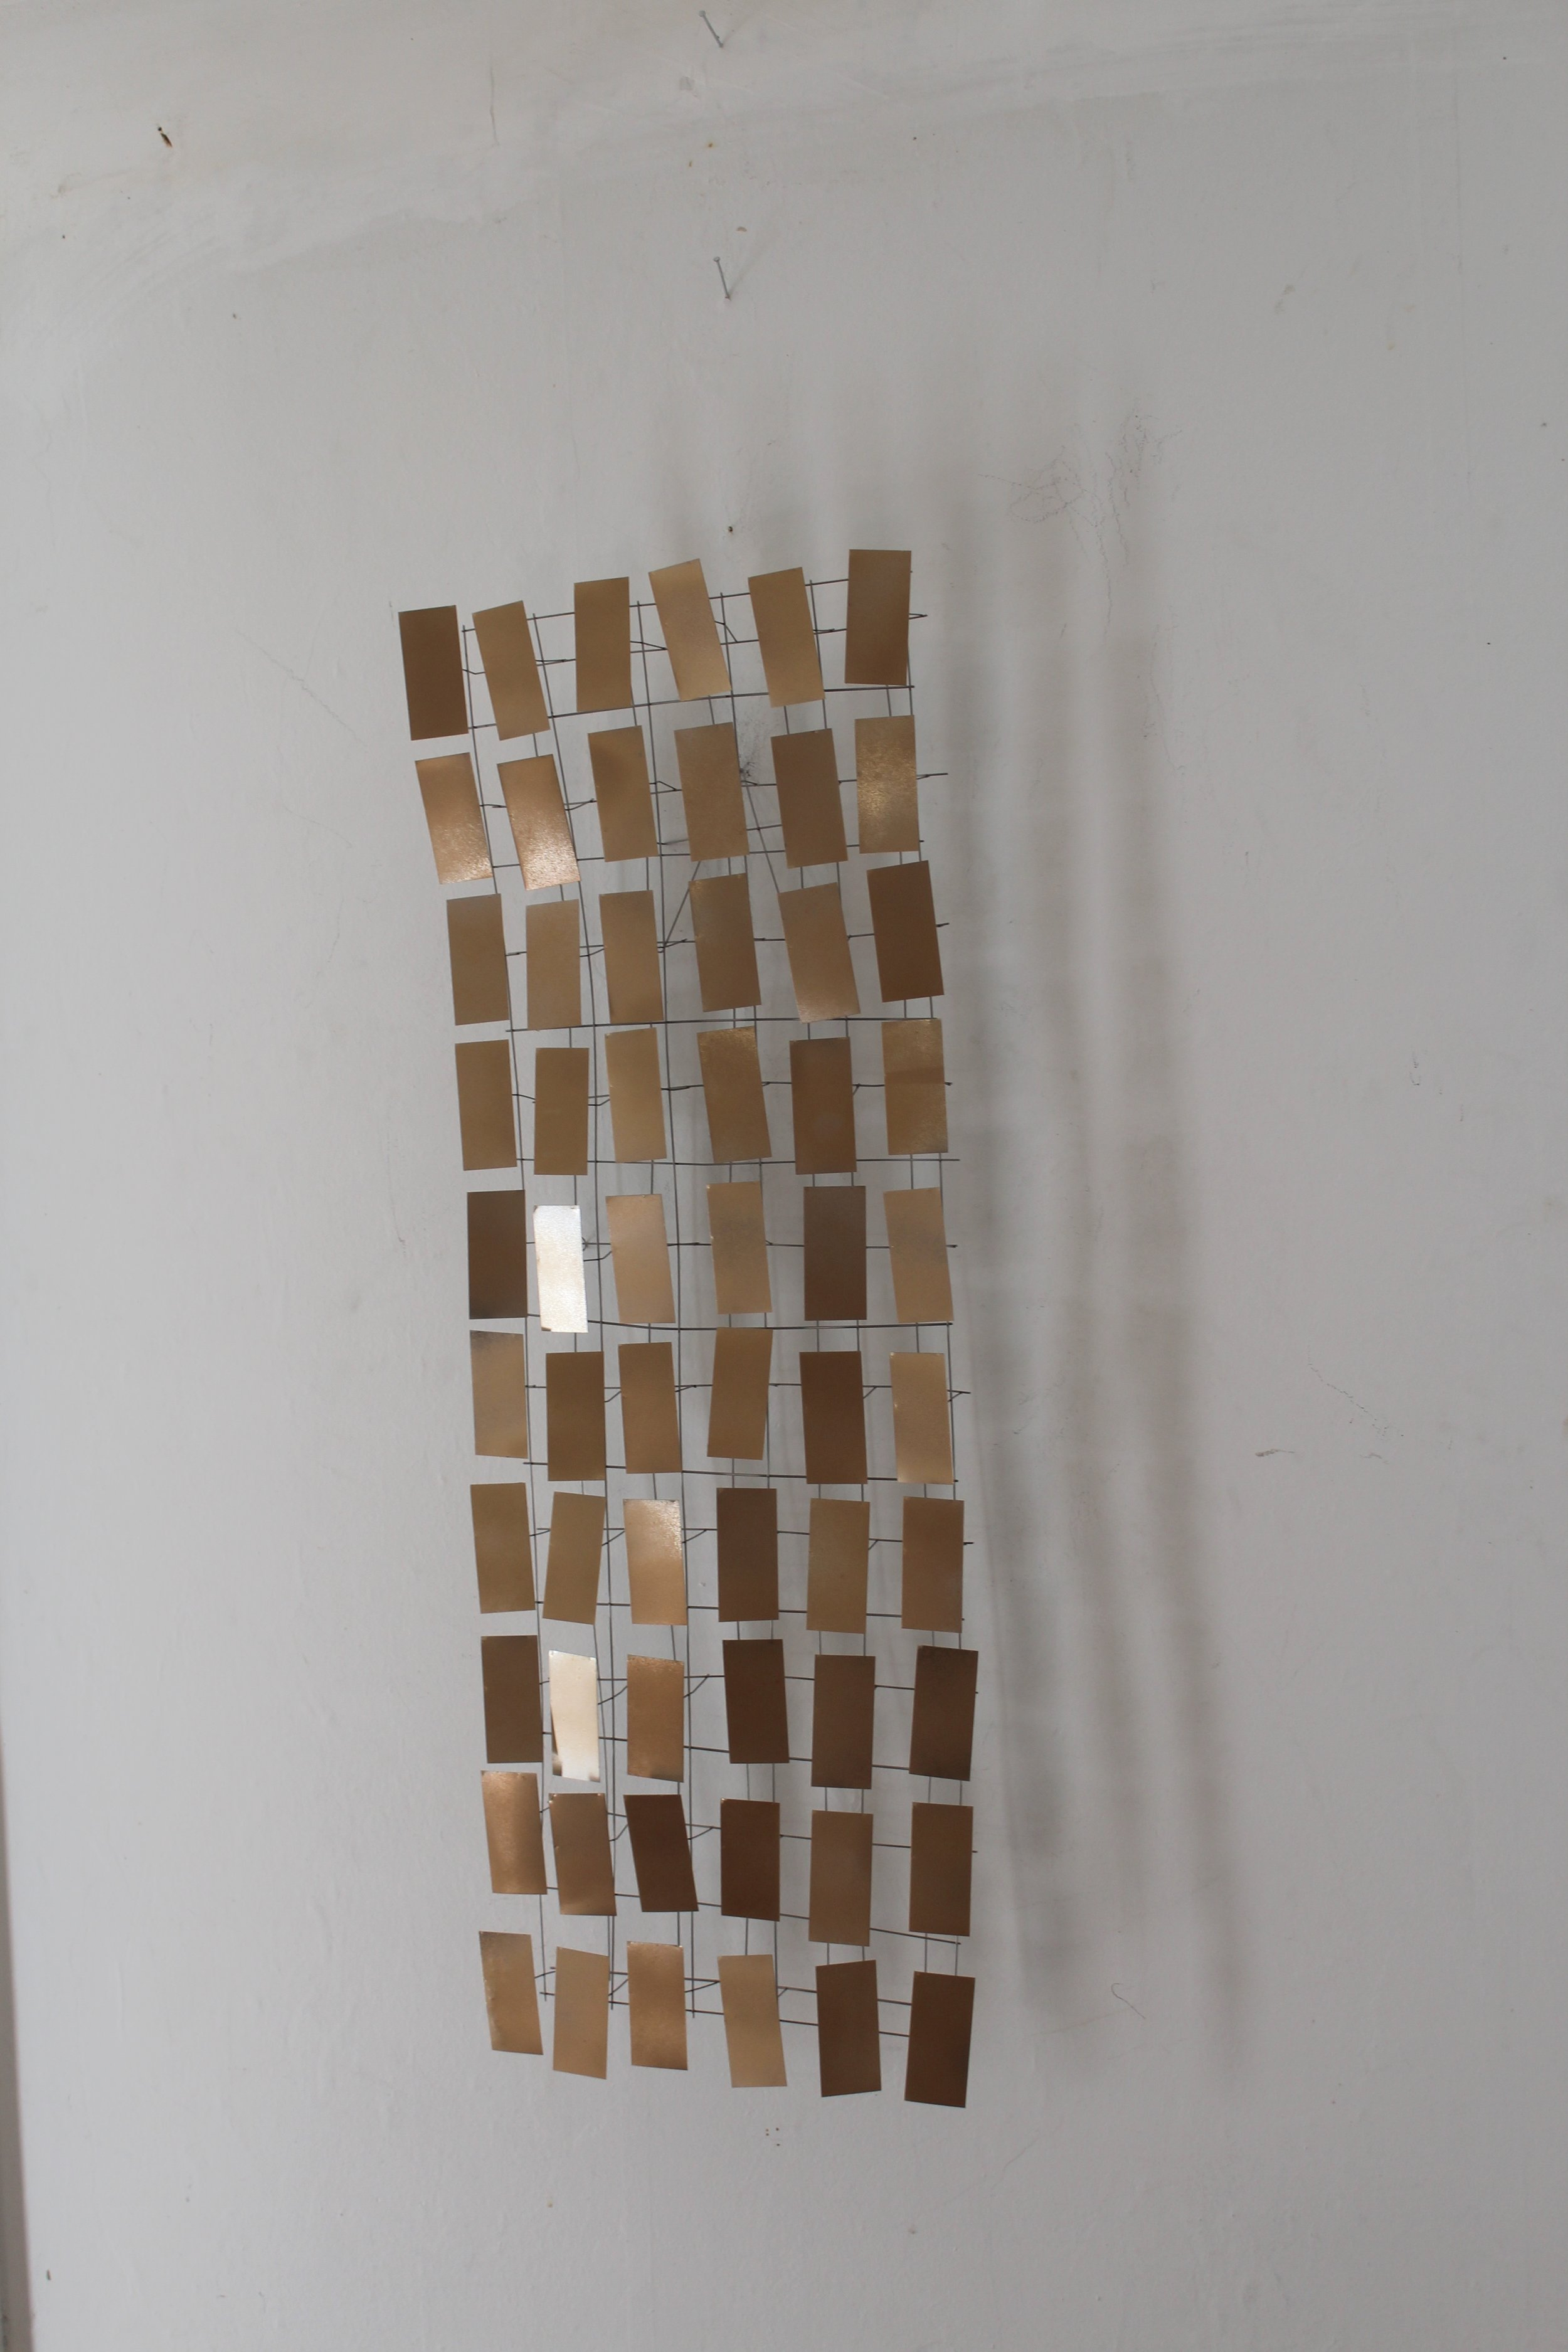 All Gold  Painted aluminum ad stainless steel 30 x 11 x 3 inches